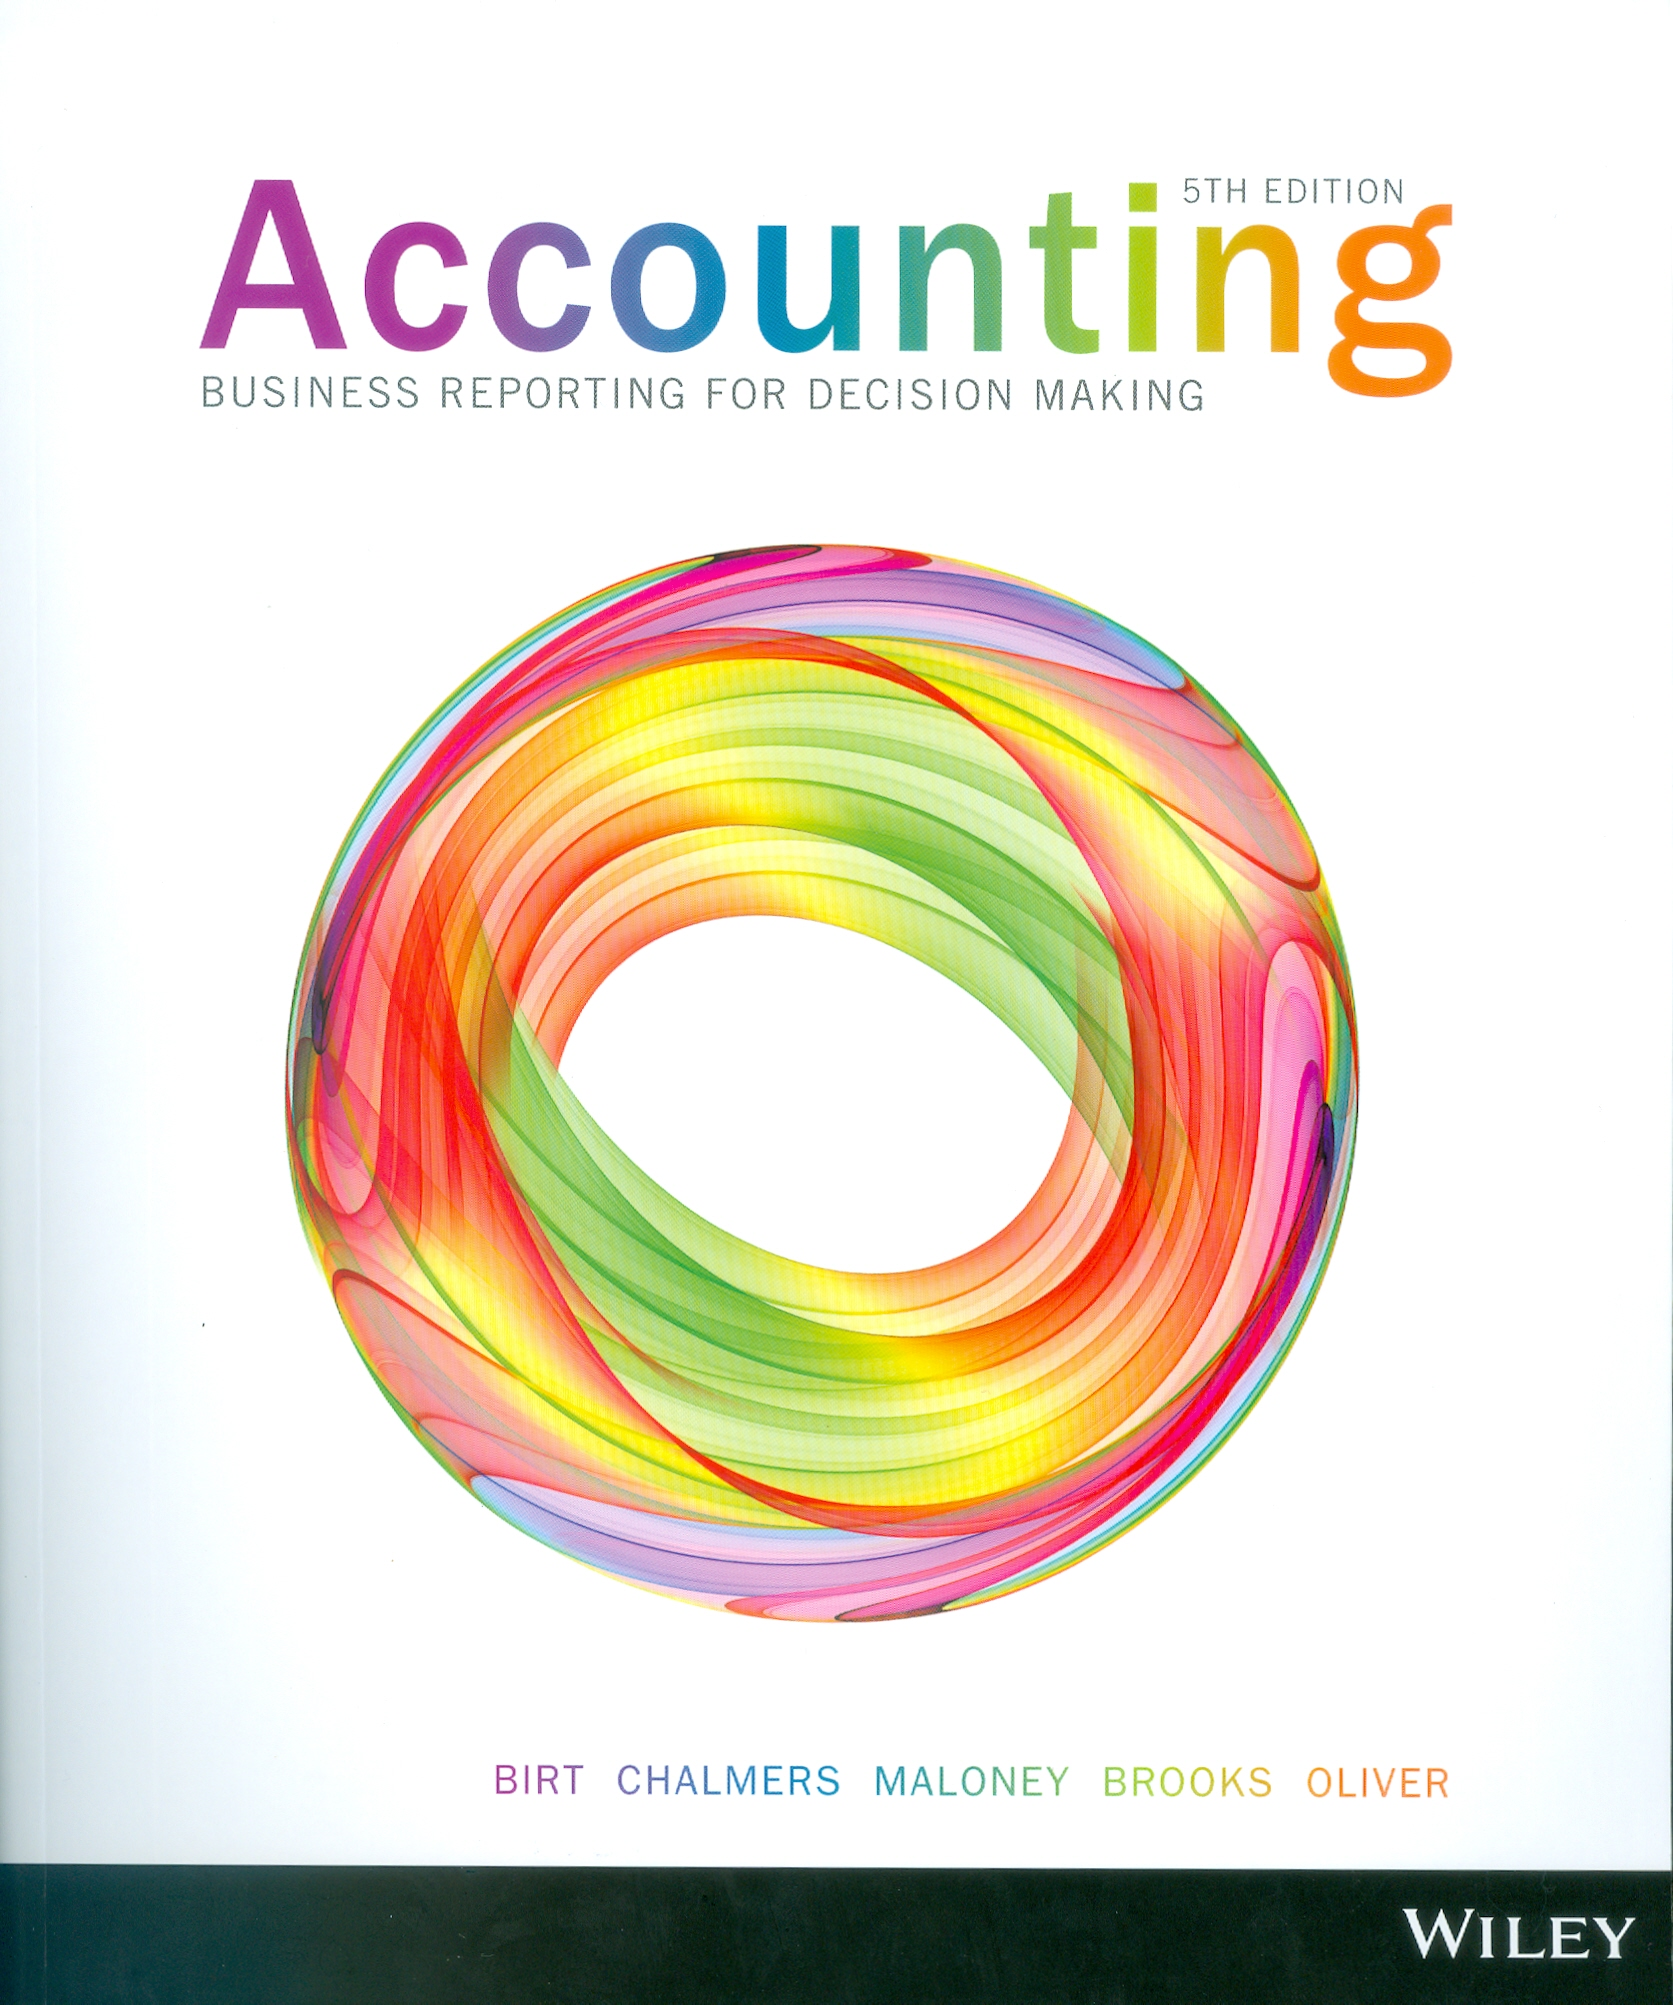 Cov_Accounting - business.jpg